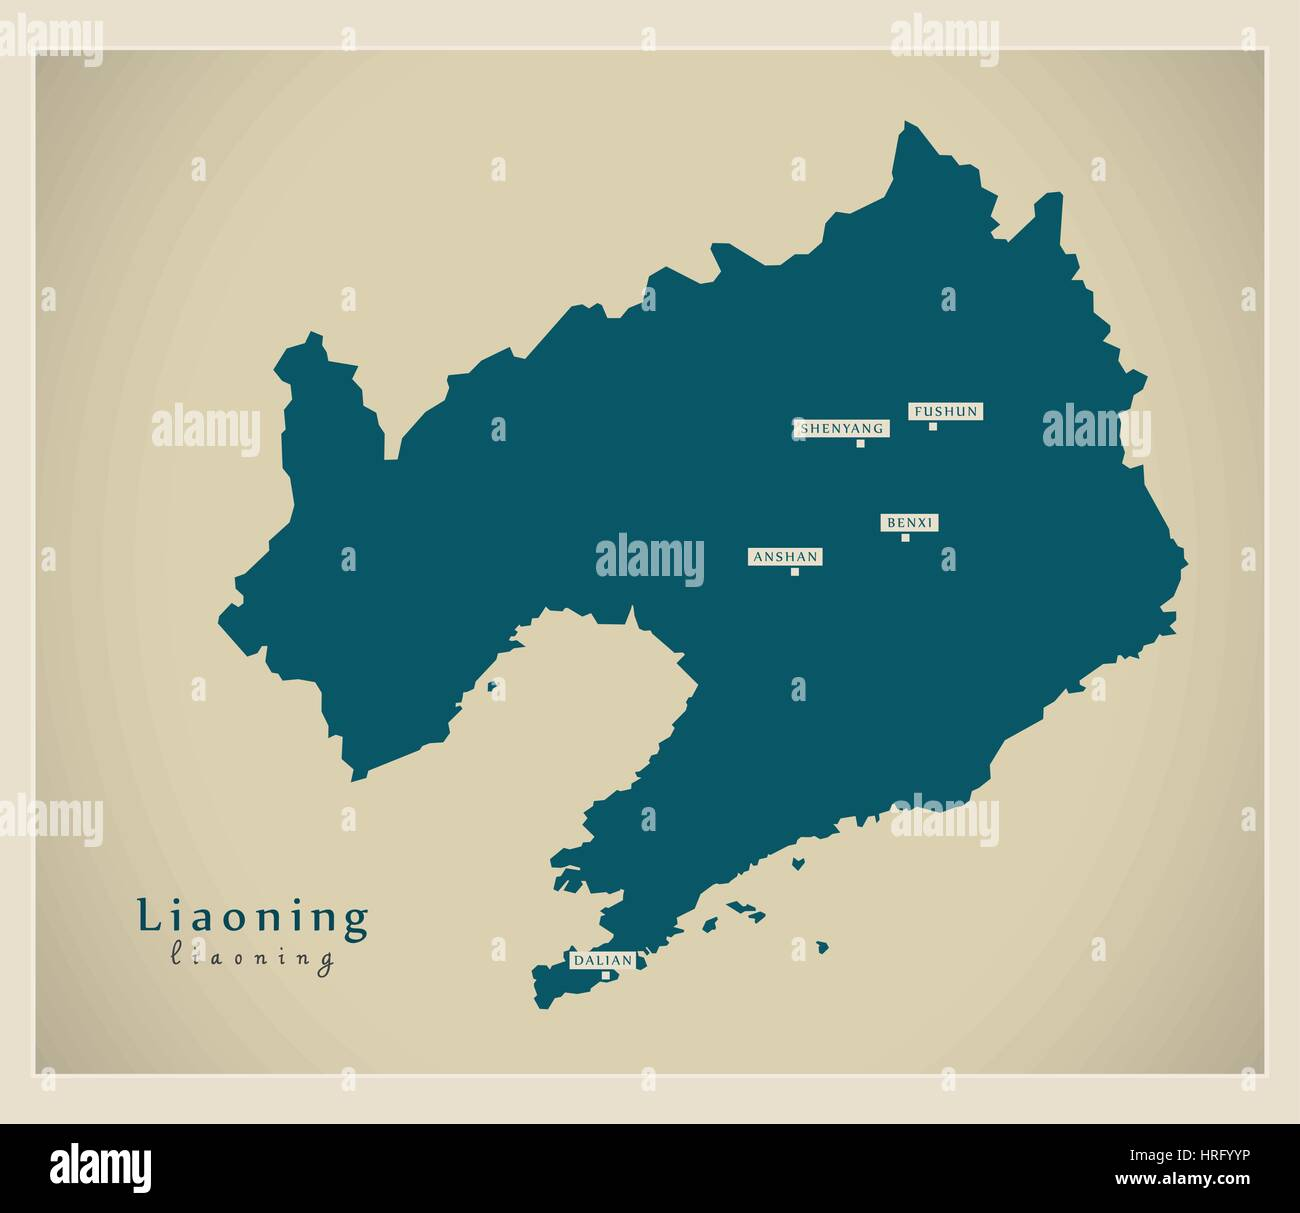 Modern Map - Liaoning - Stock Image